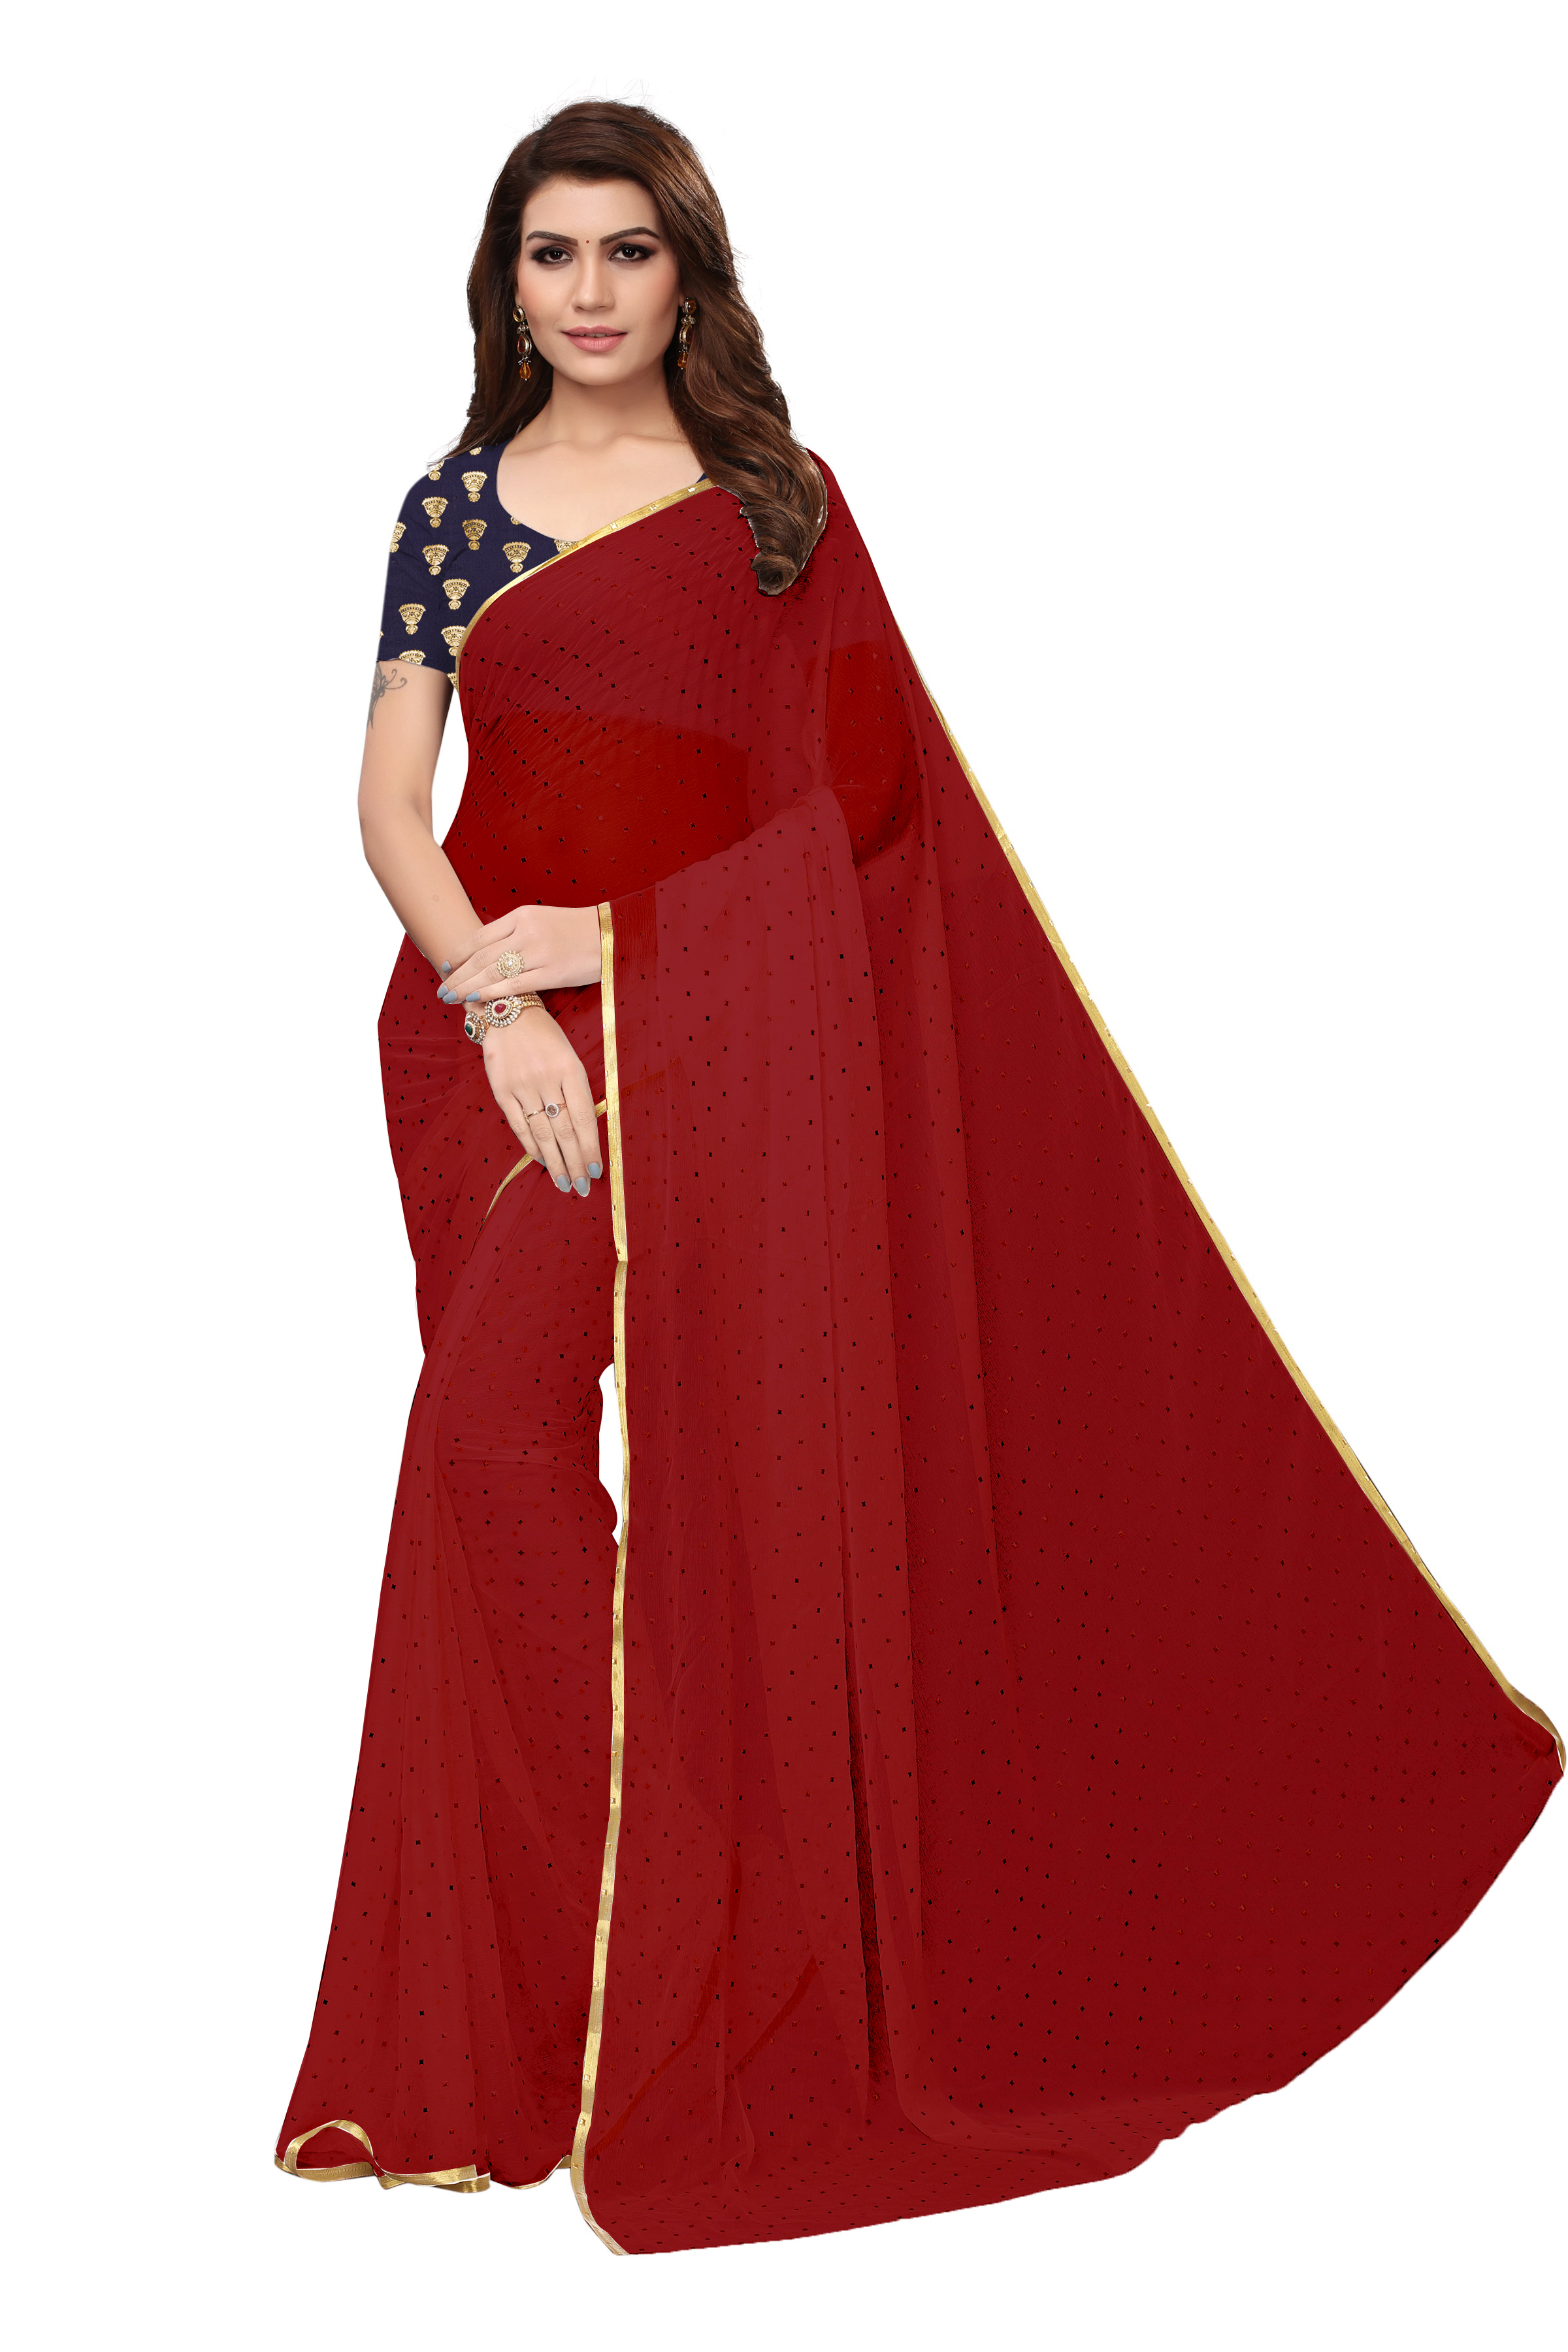 New Chiffon saree